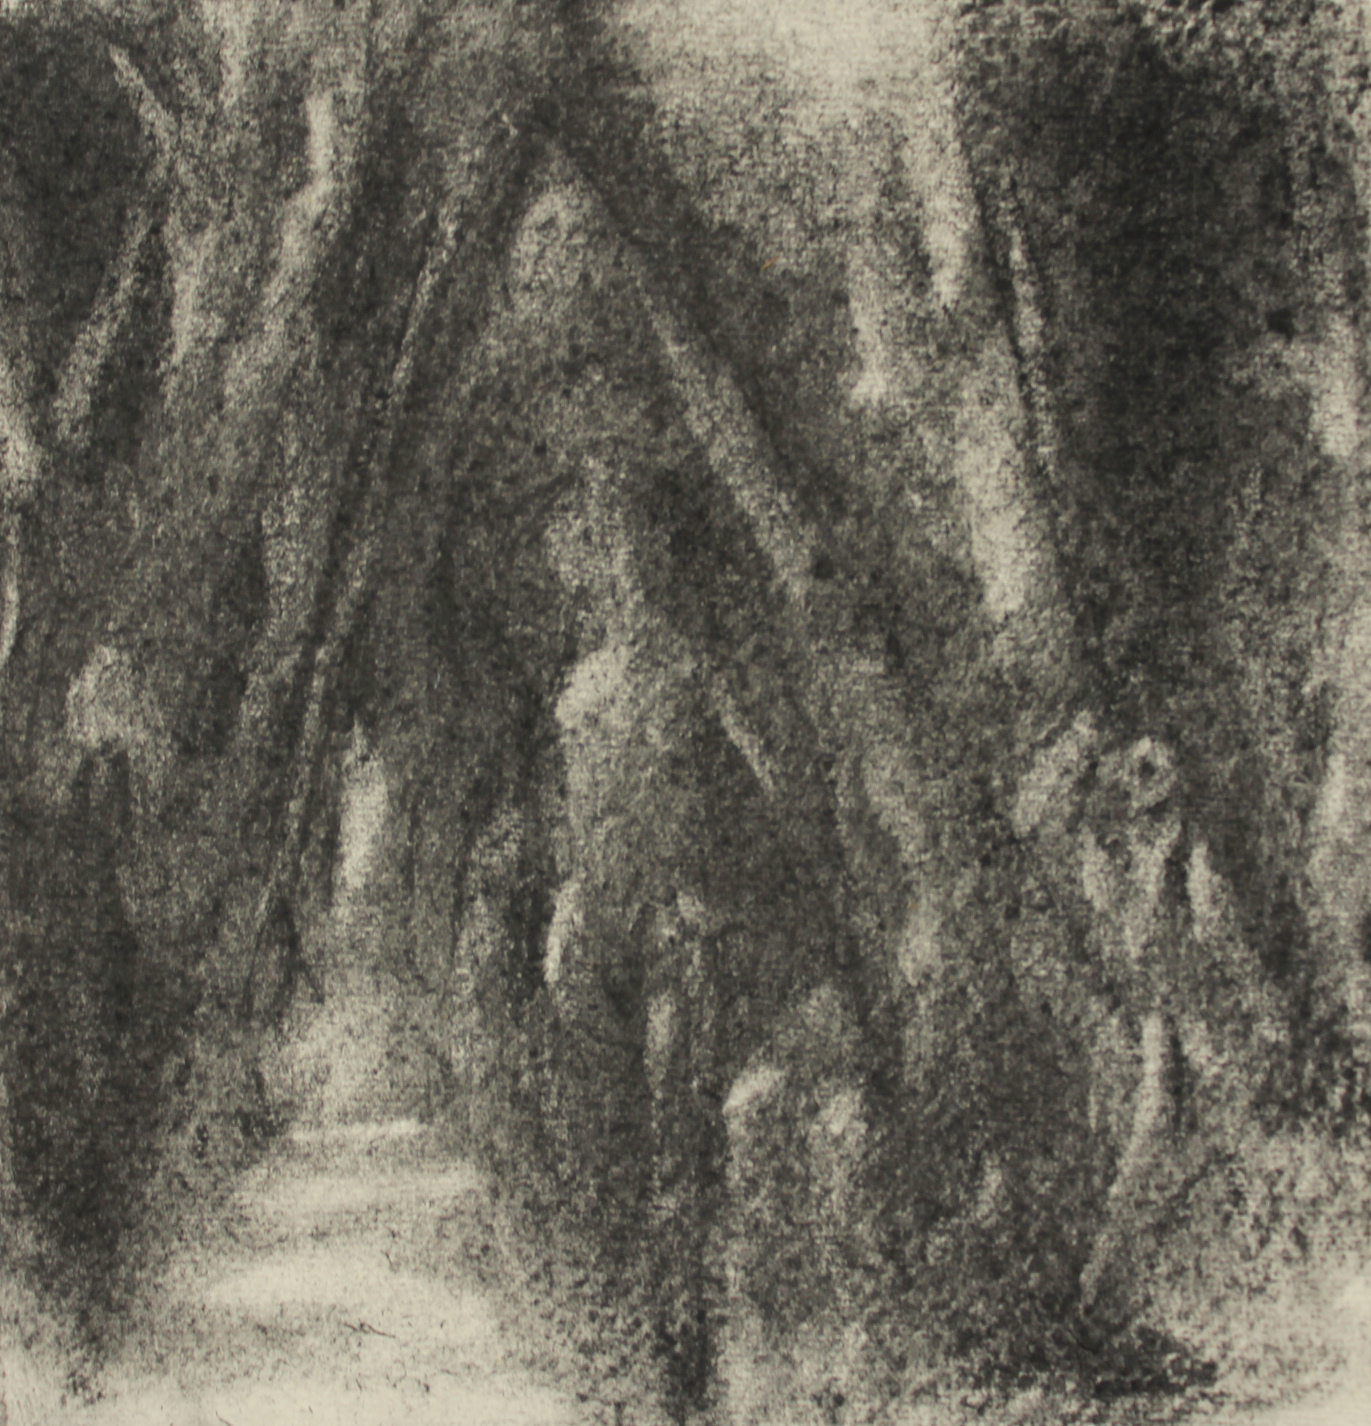 'Death of the ego' charcoal on khadi paper